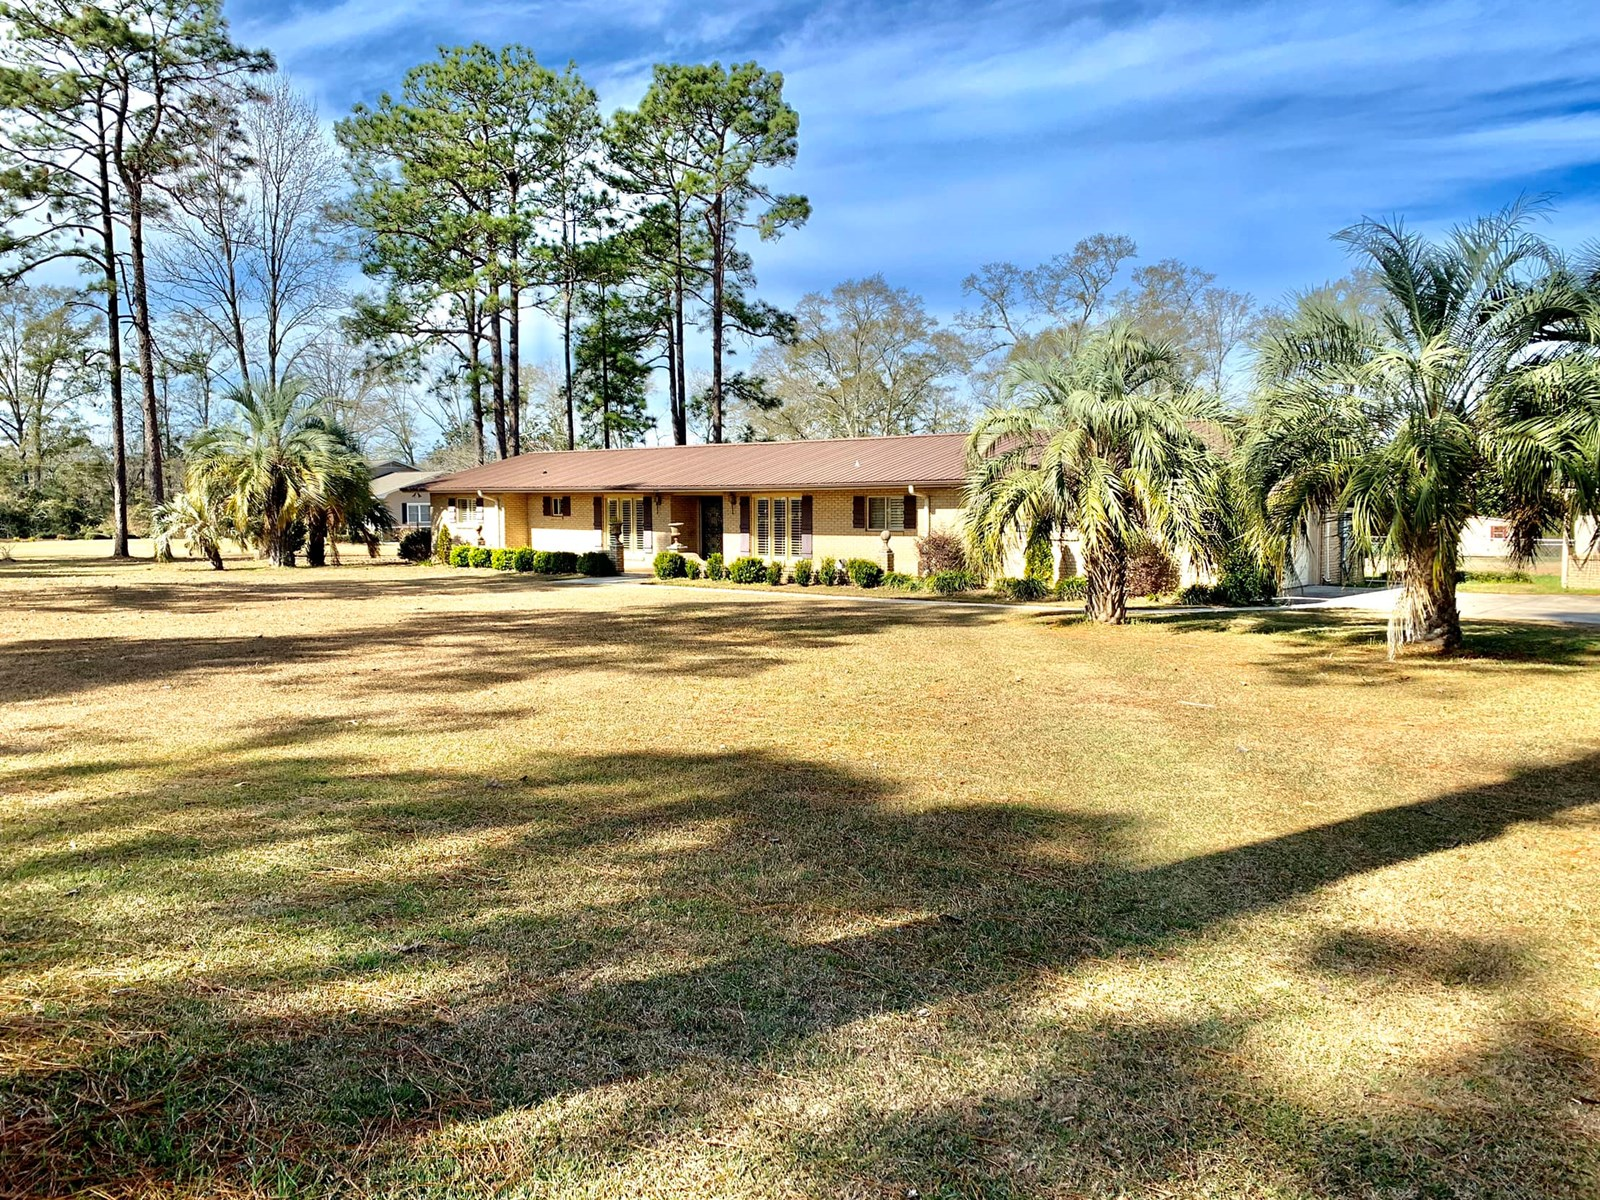 Home for sale Hartford, Alabama in the Wiregrass Area